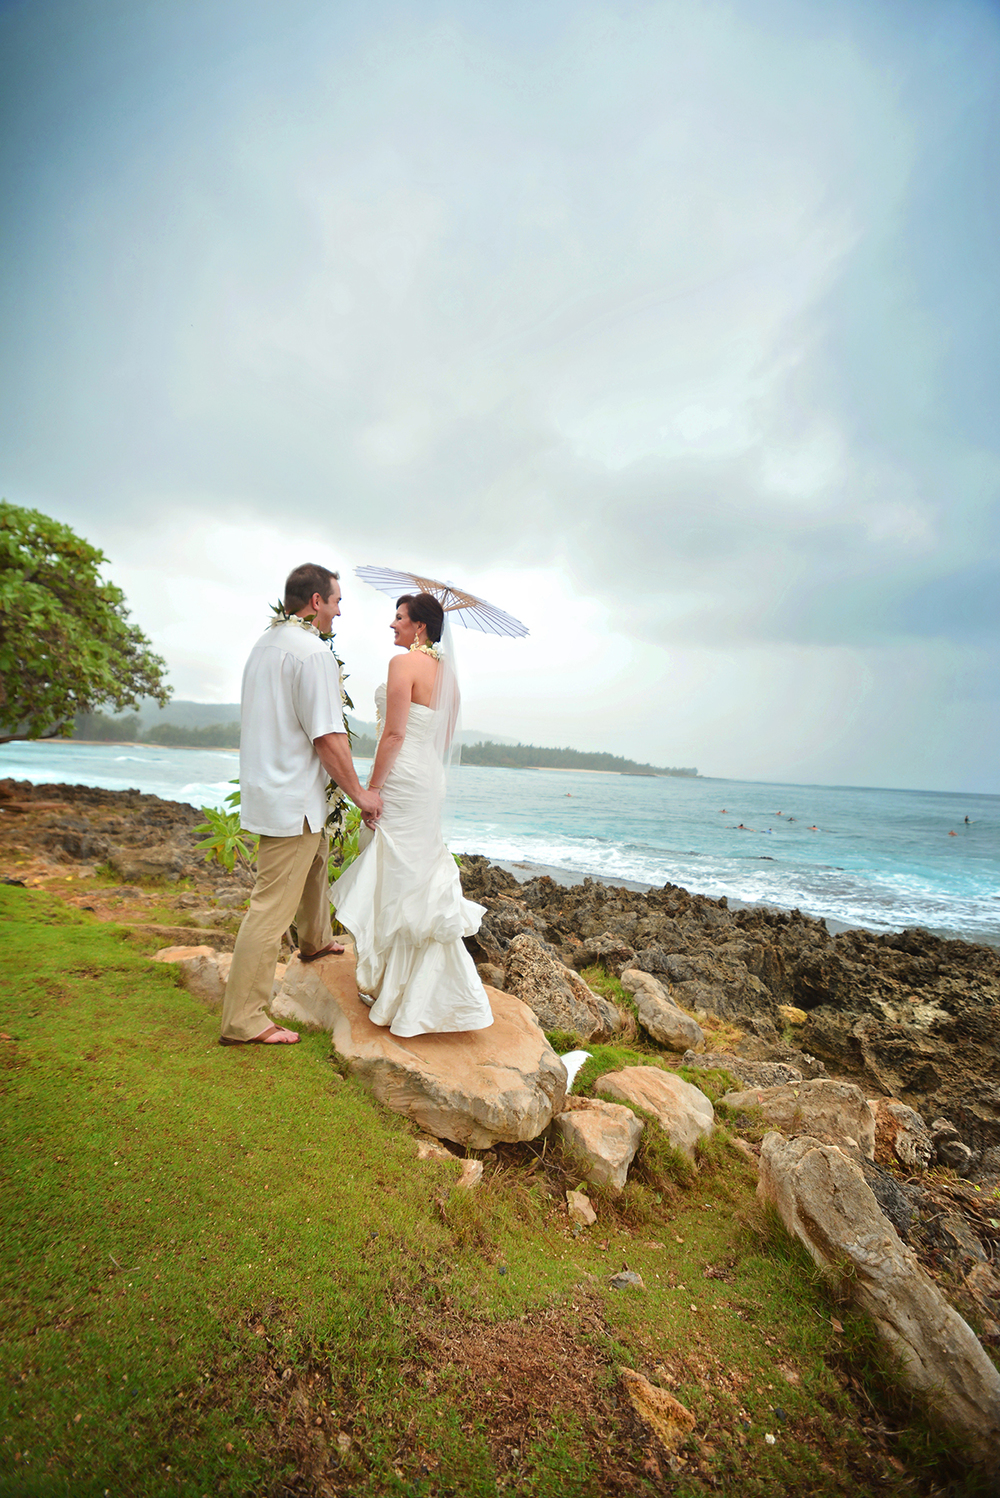 Michelle Garibay Events | Turtle Bay Resort Wedding | Hawaii Destination Wedding Planner | North Shore Oahu Wedding